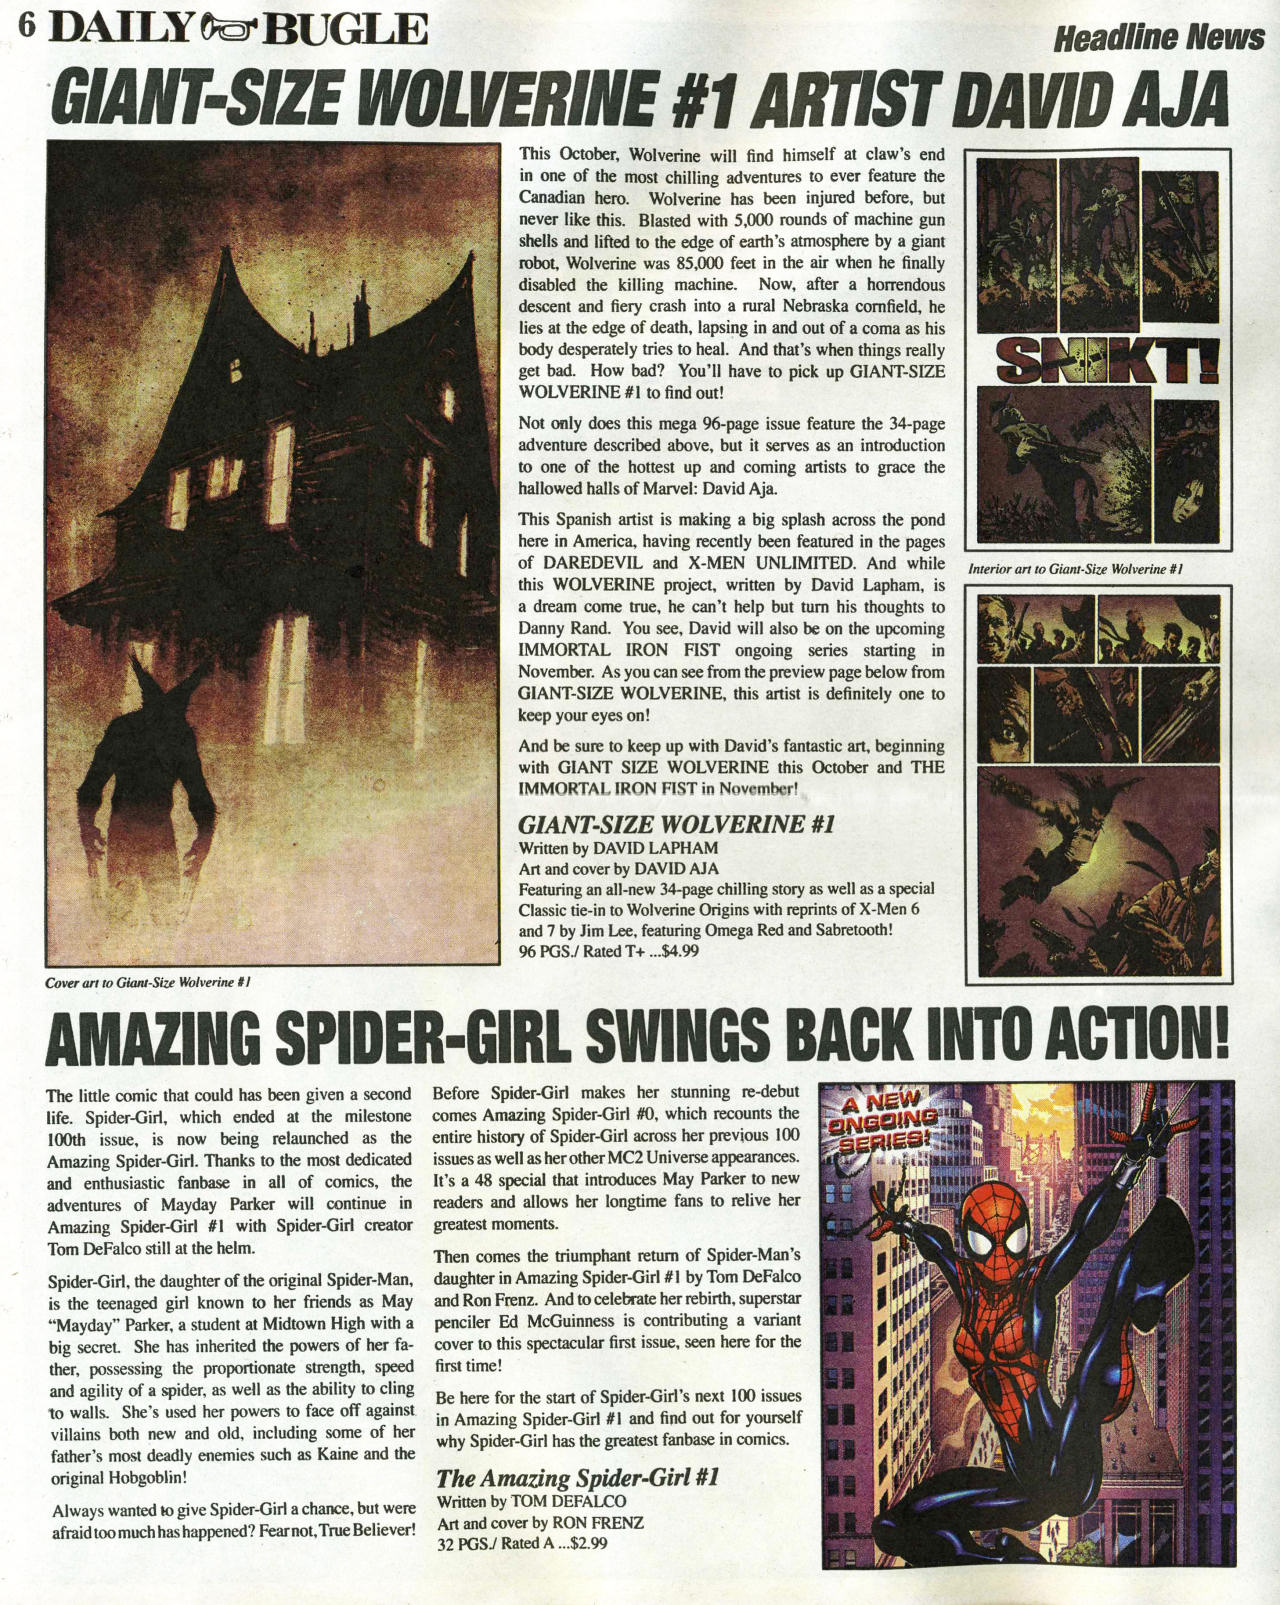 Read online Daily Bugle (2006) comic -  Issue #1 - 6